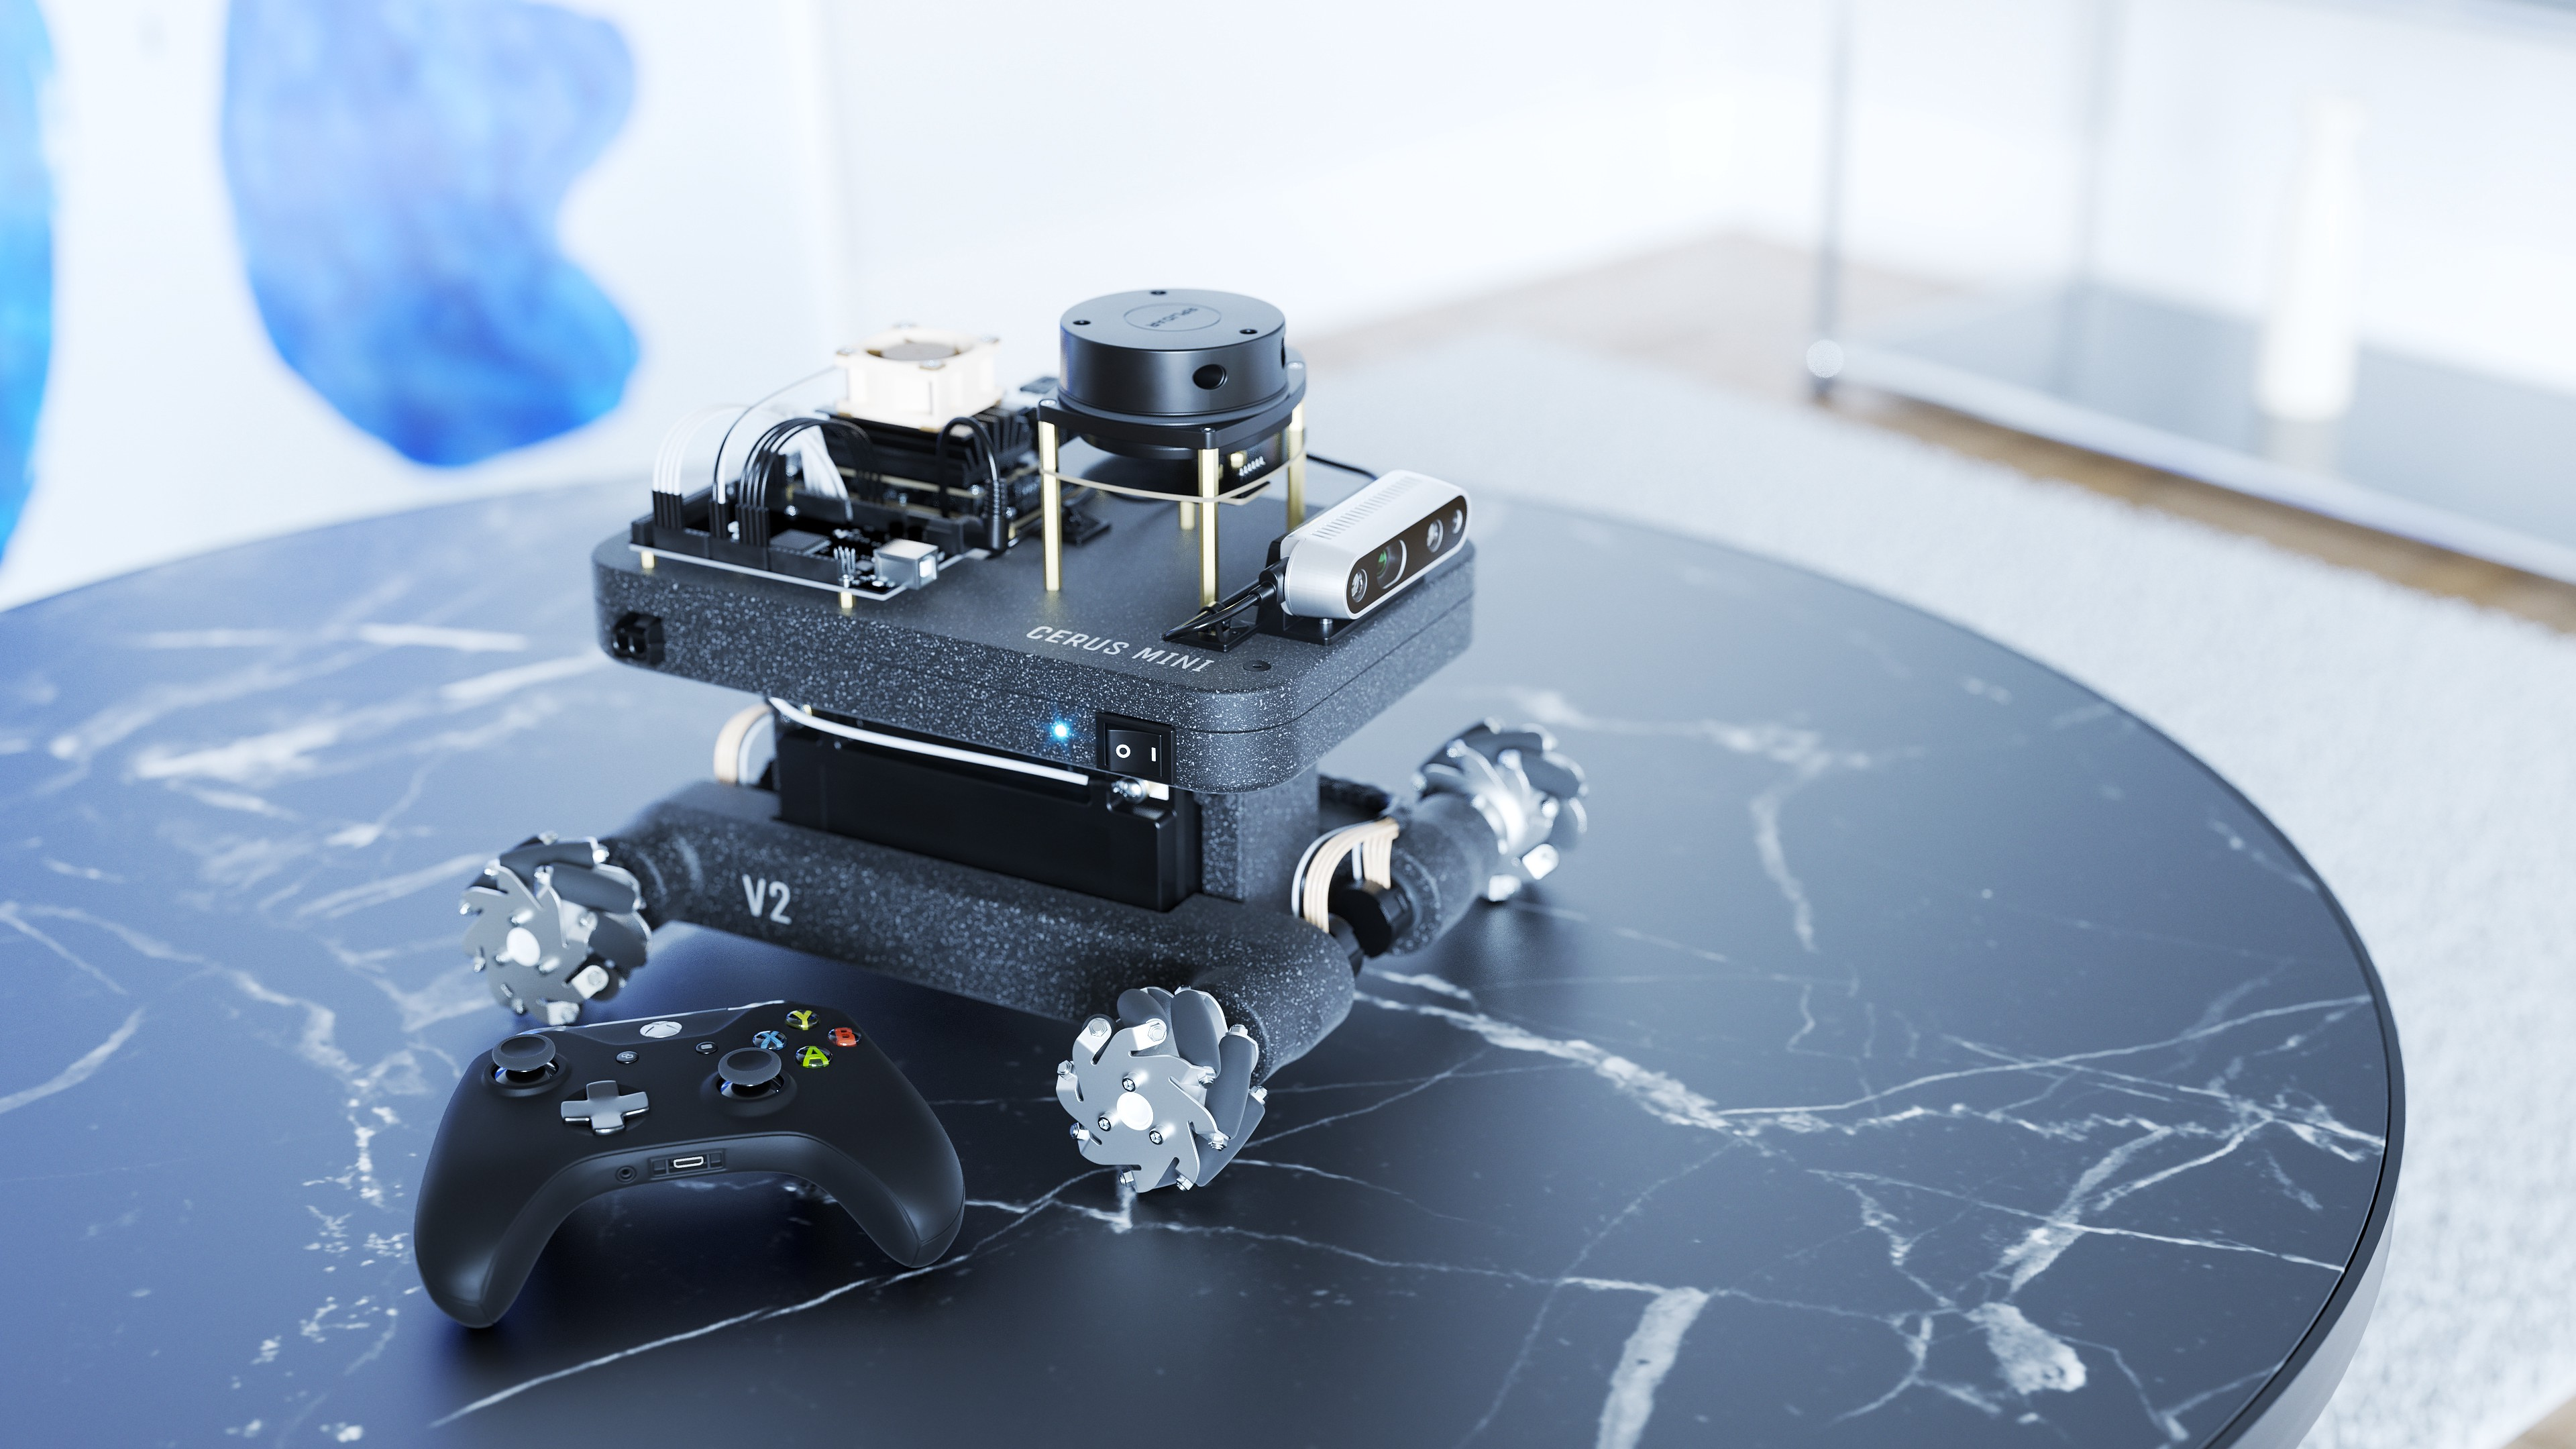 Cerus mobile robot with Xbox controller